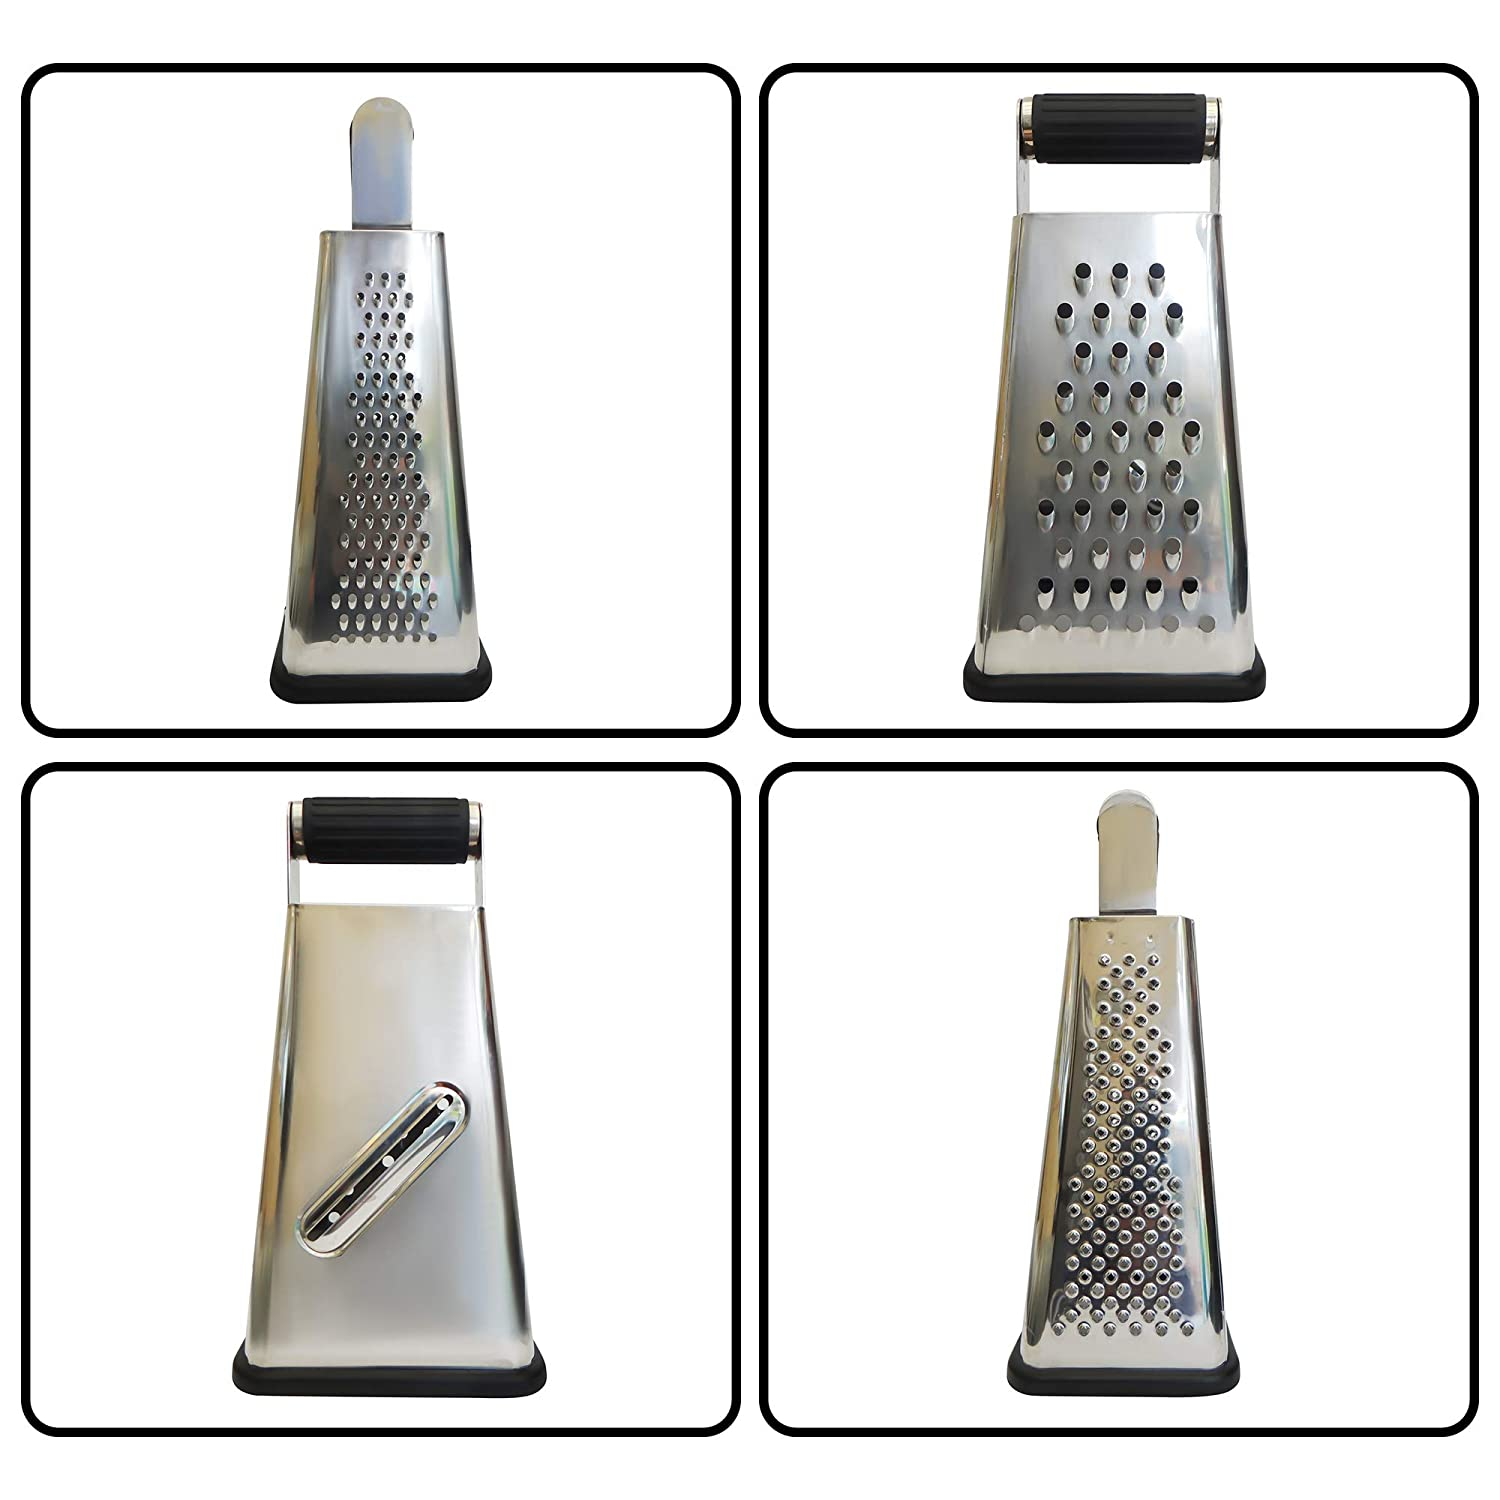 Box Grater With Container to Catch and Store Shavings - Our 4 Sided Cheese Grater Is Perfect For Grating, Zesting and Slicing - Made From Commercial Grade Stainless Steel Which will NOT RUST Sharper Retail Ltd COMINHKPR118580